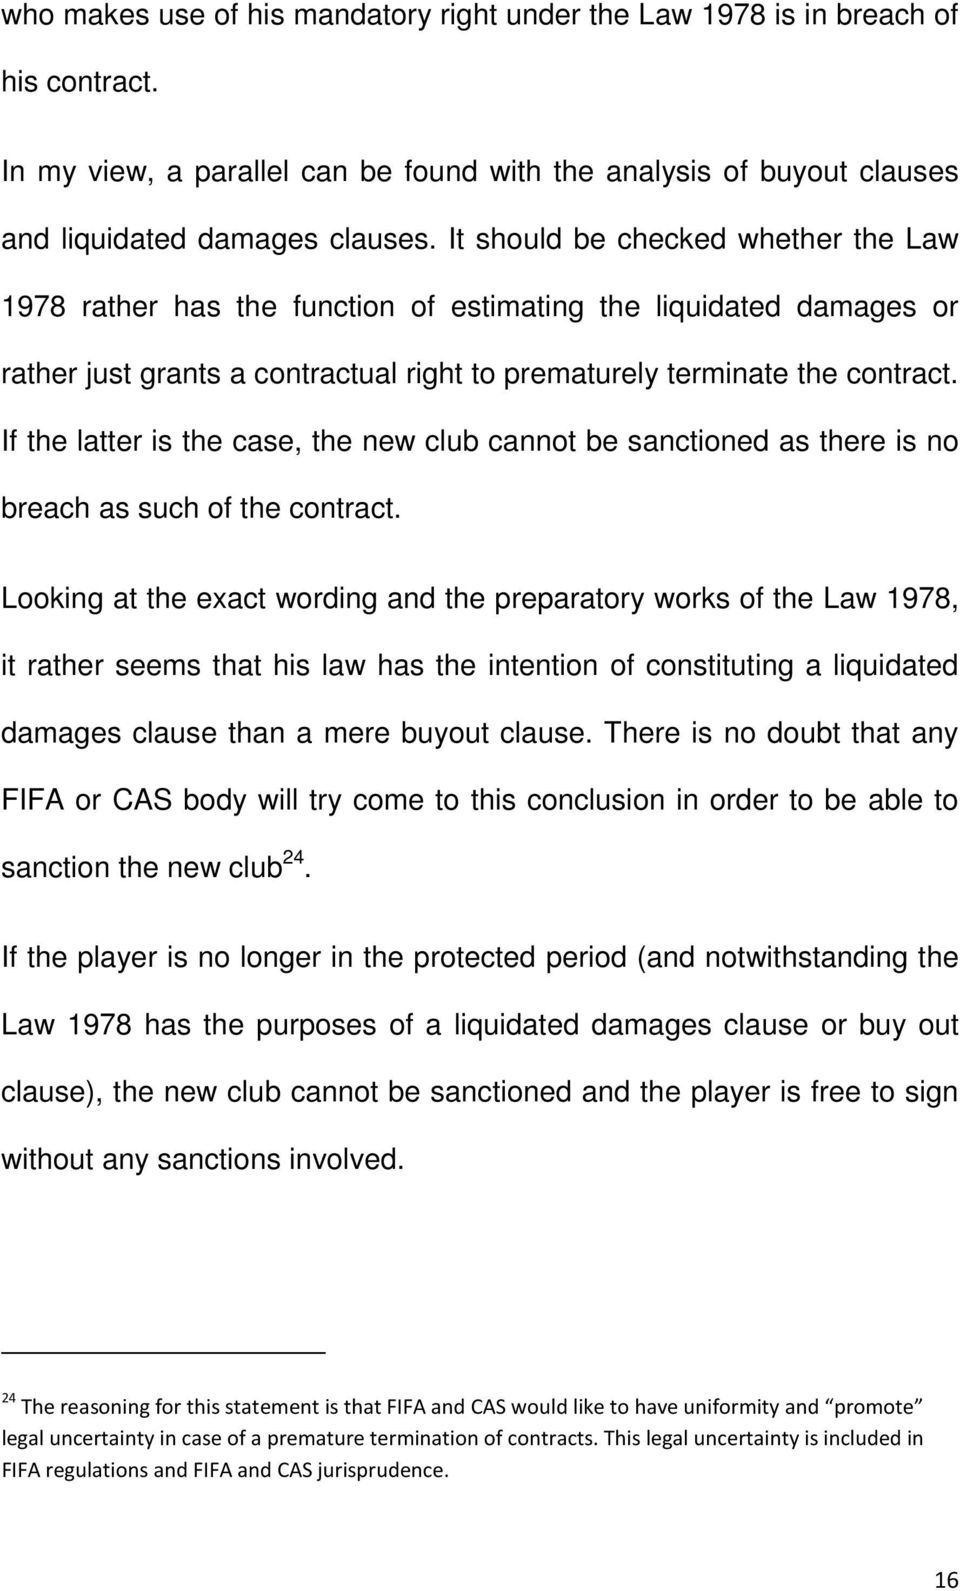 If the latter is the case, the new club cannot be sanctioned as there is no breach as such of the contract.